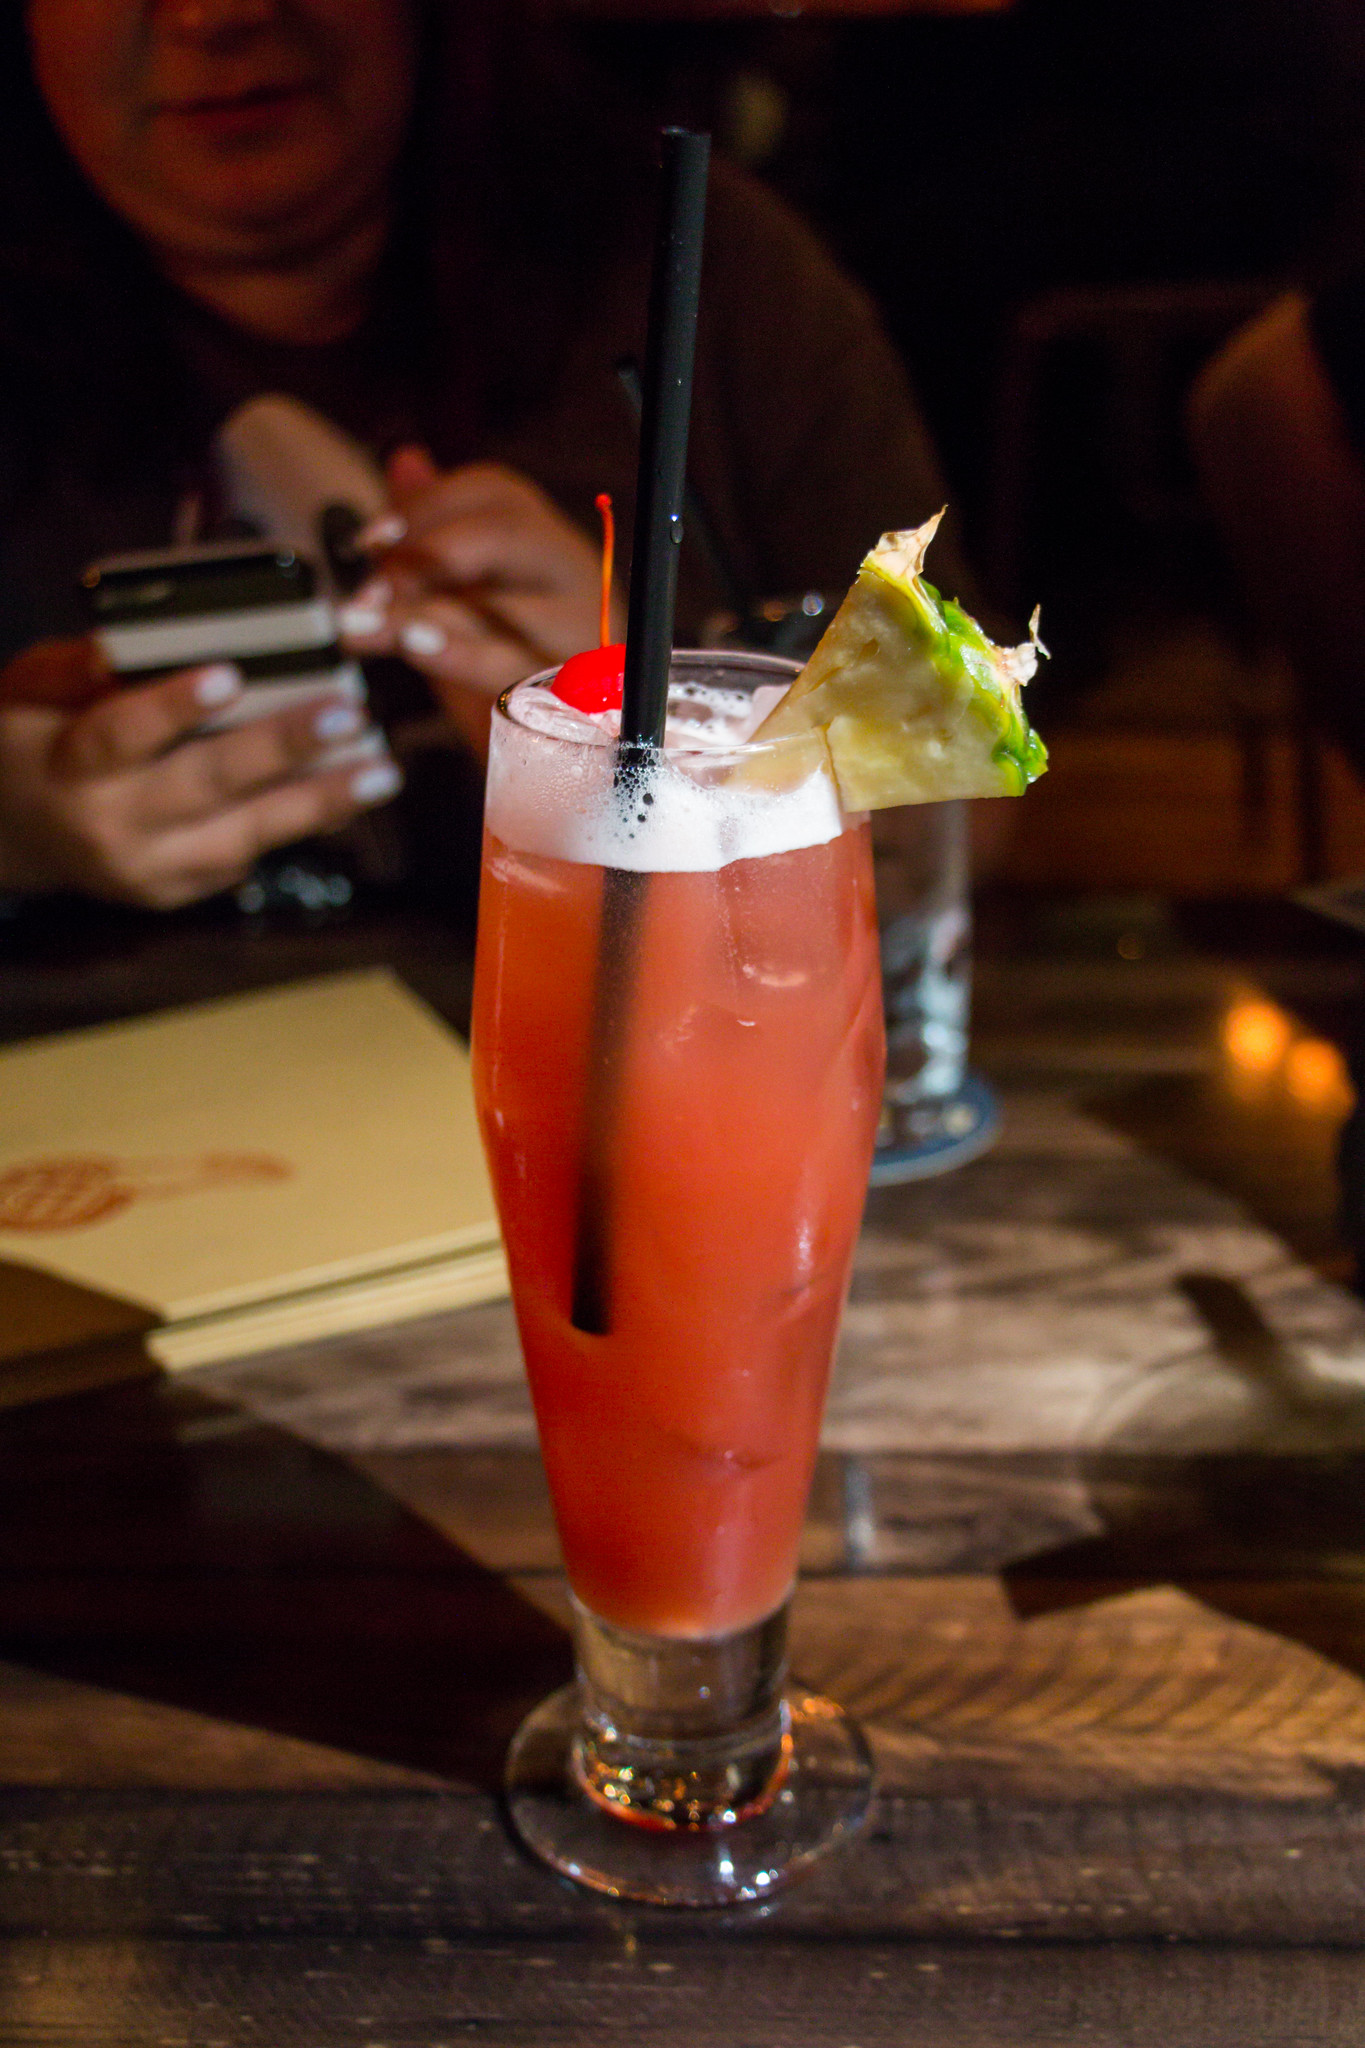 A reddish/pinkish drink served in a tall glass with a pinkish foam on top along with a pineapple & cherry garnish.